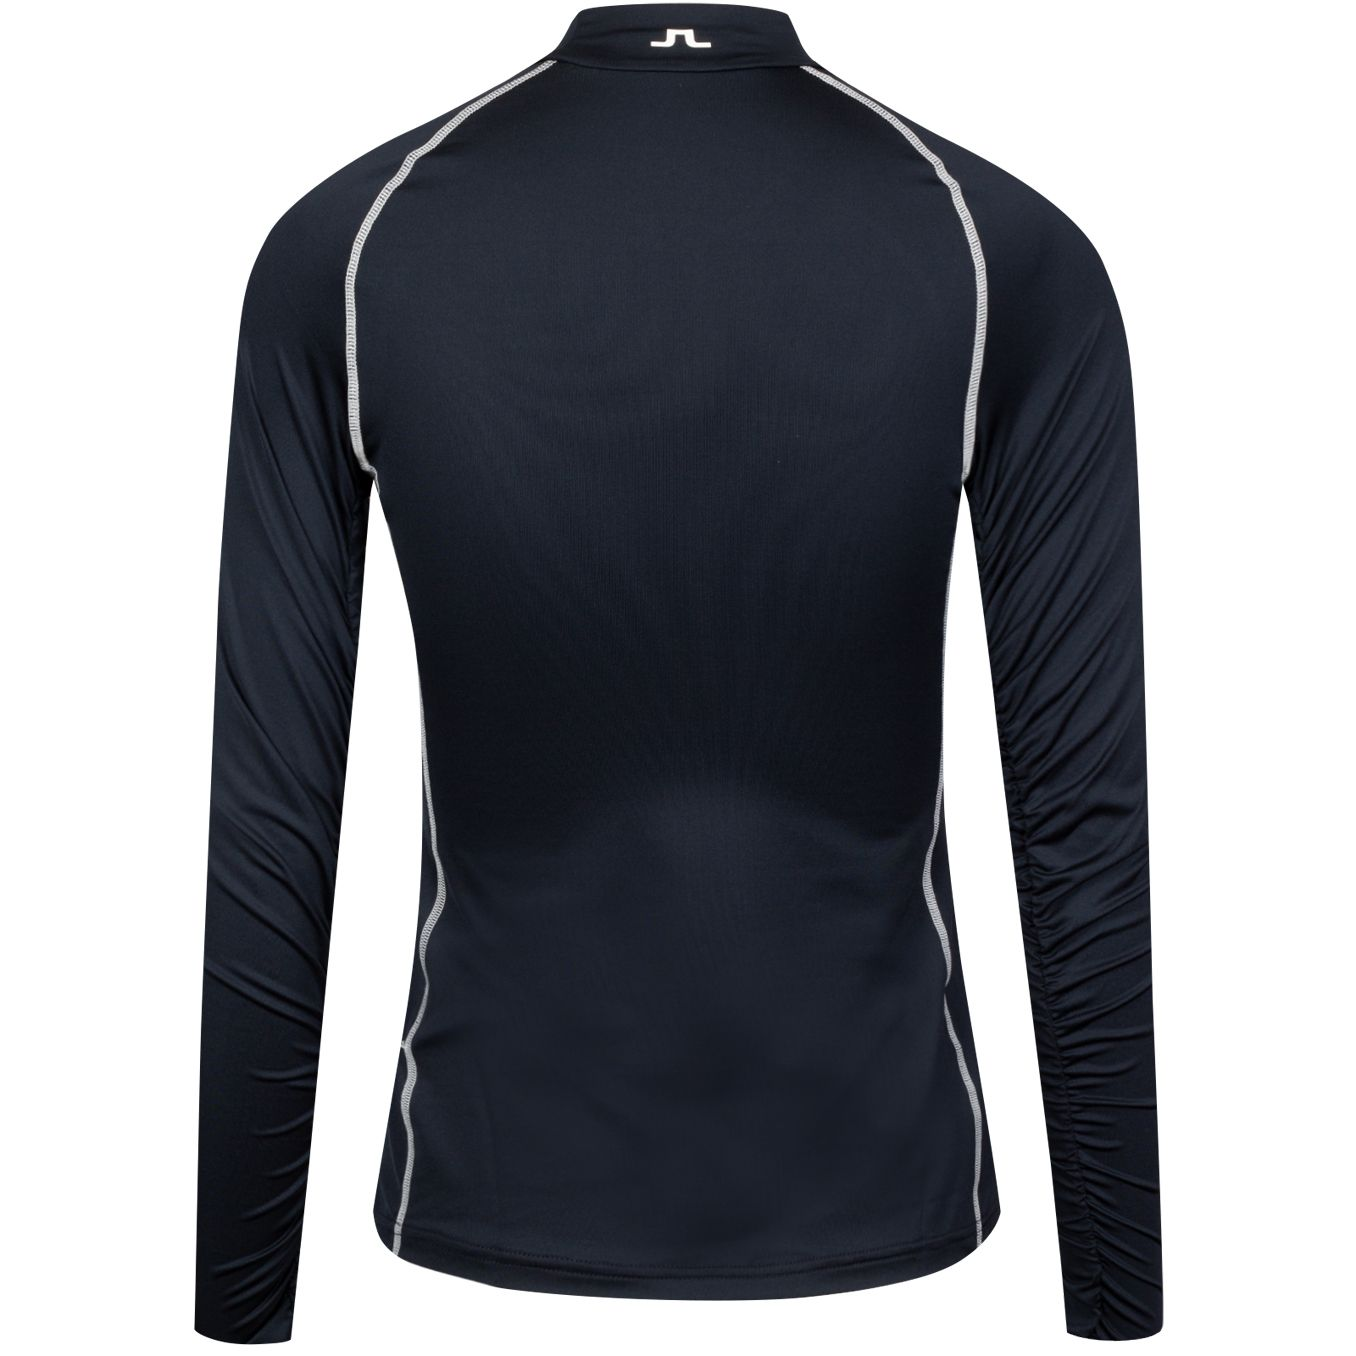 J.Lindeberg Womens Long Sleeve Compression Top